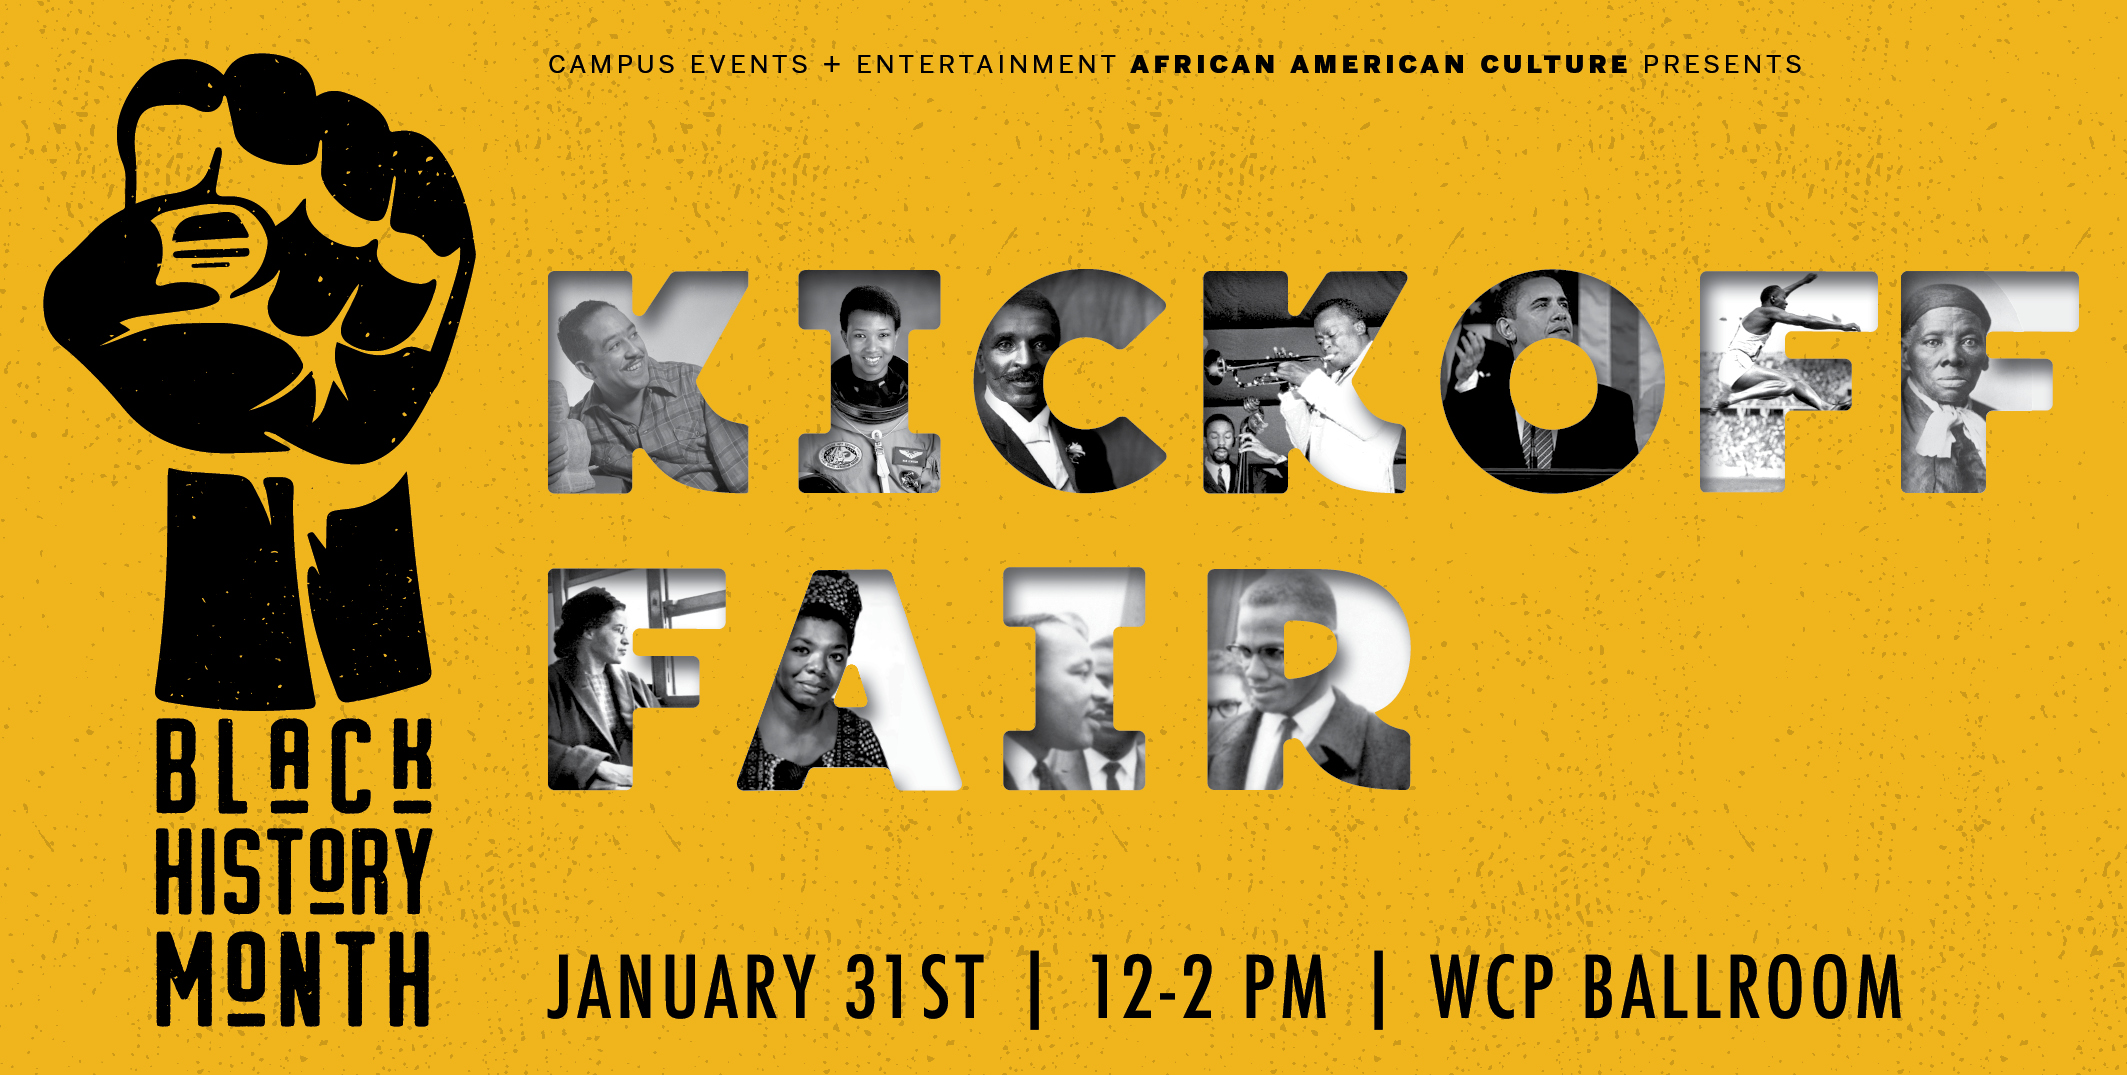 Black History Kickoff Fair will be in the WCP Ballroom